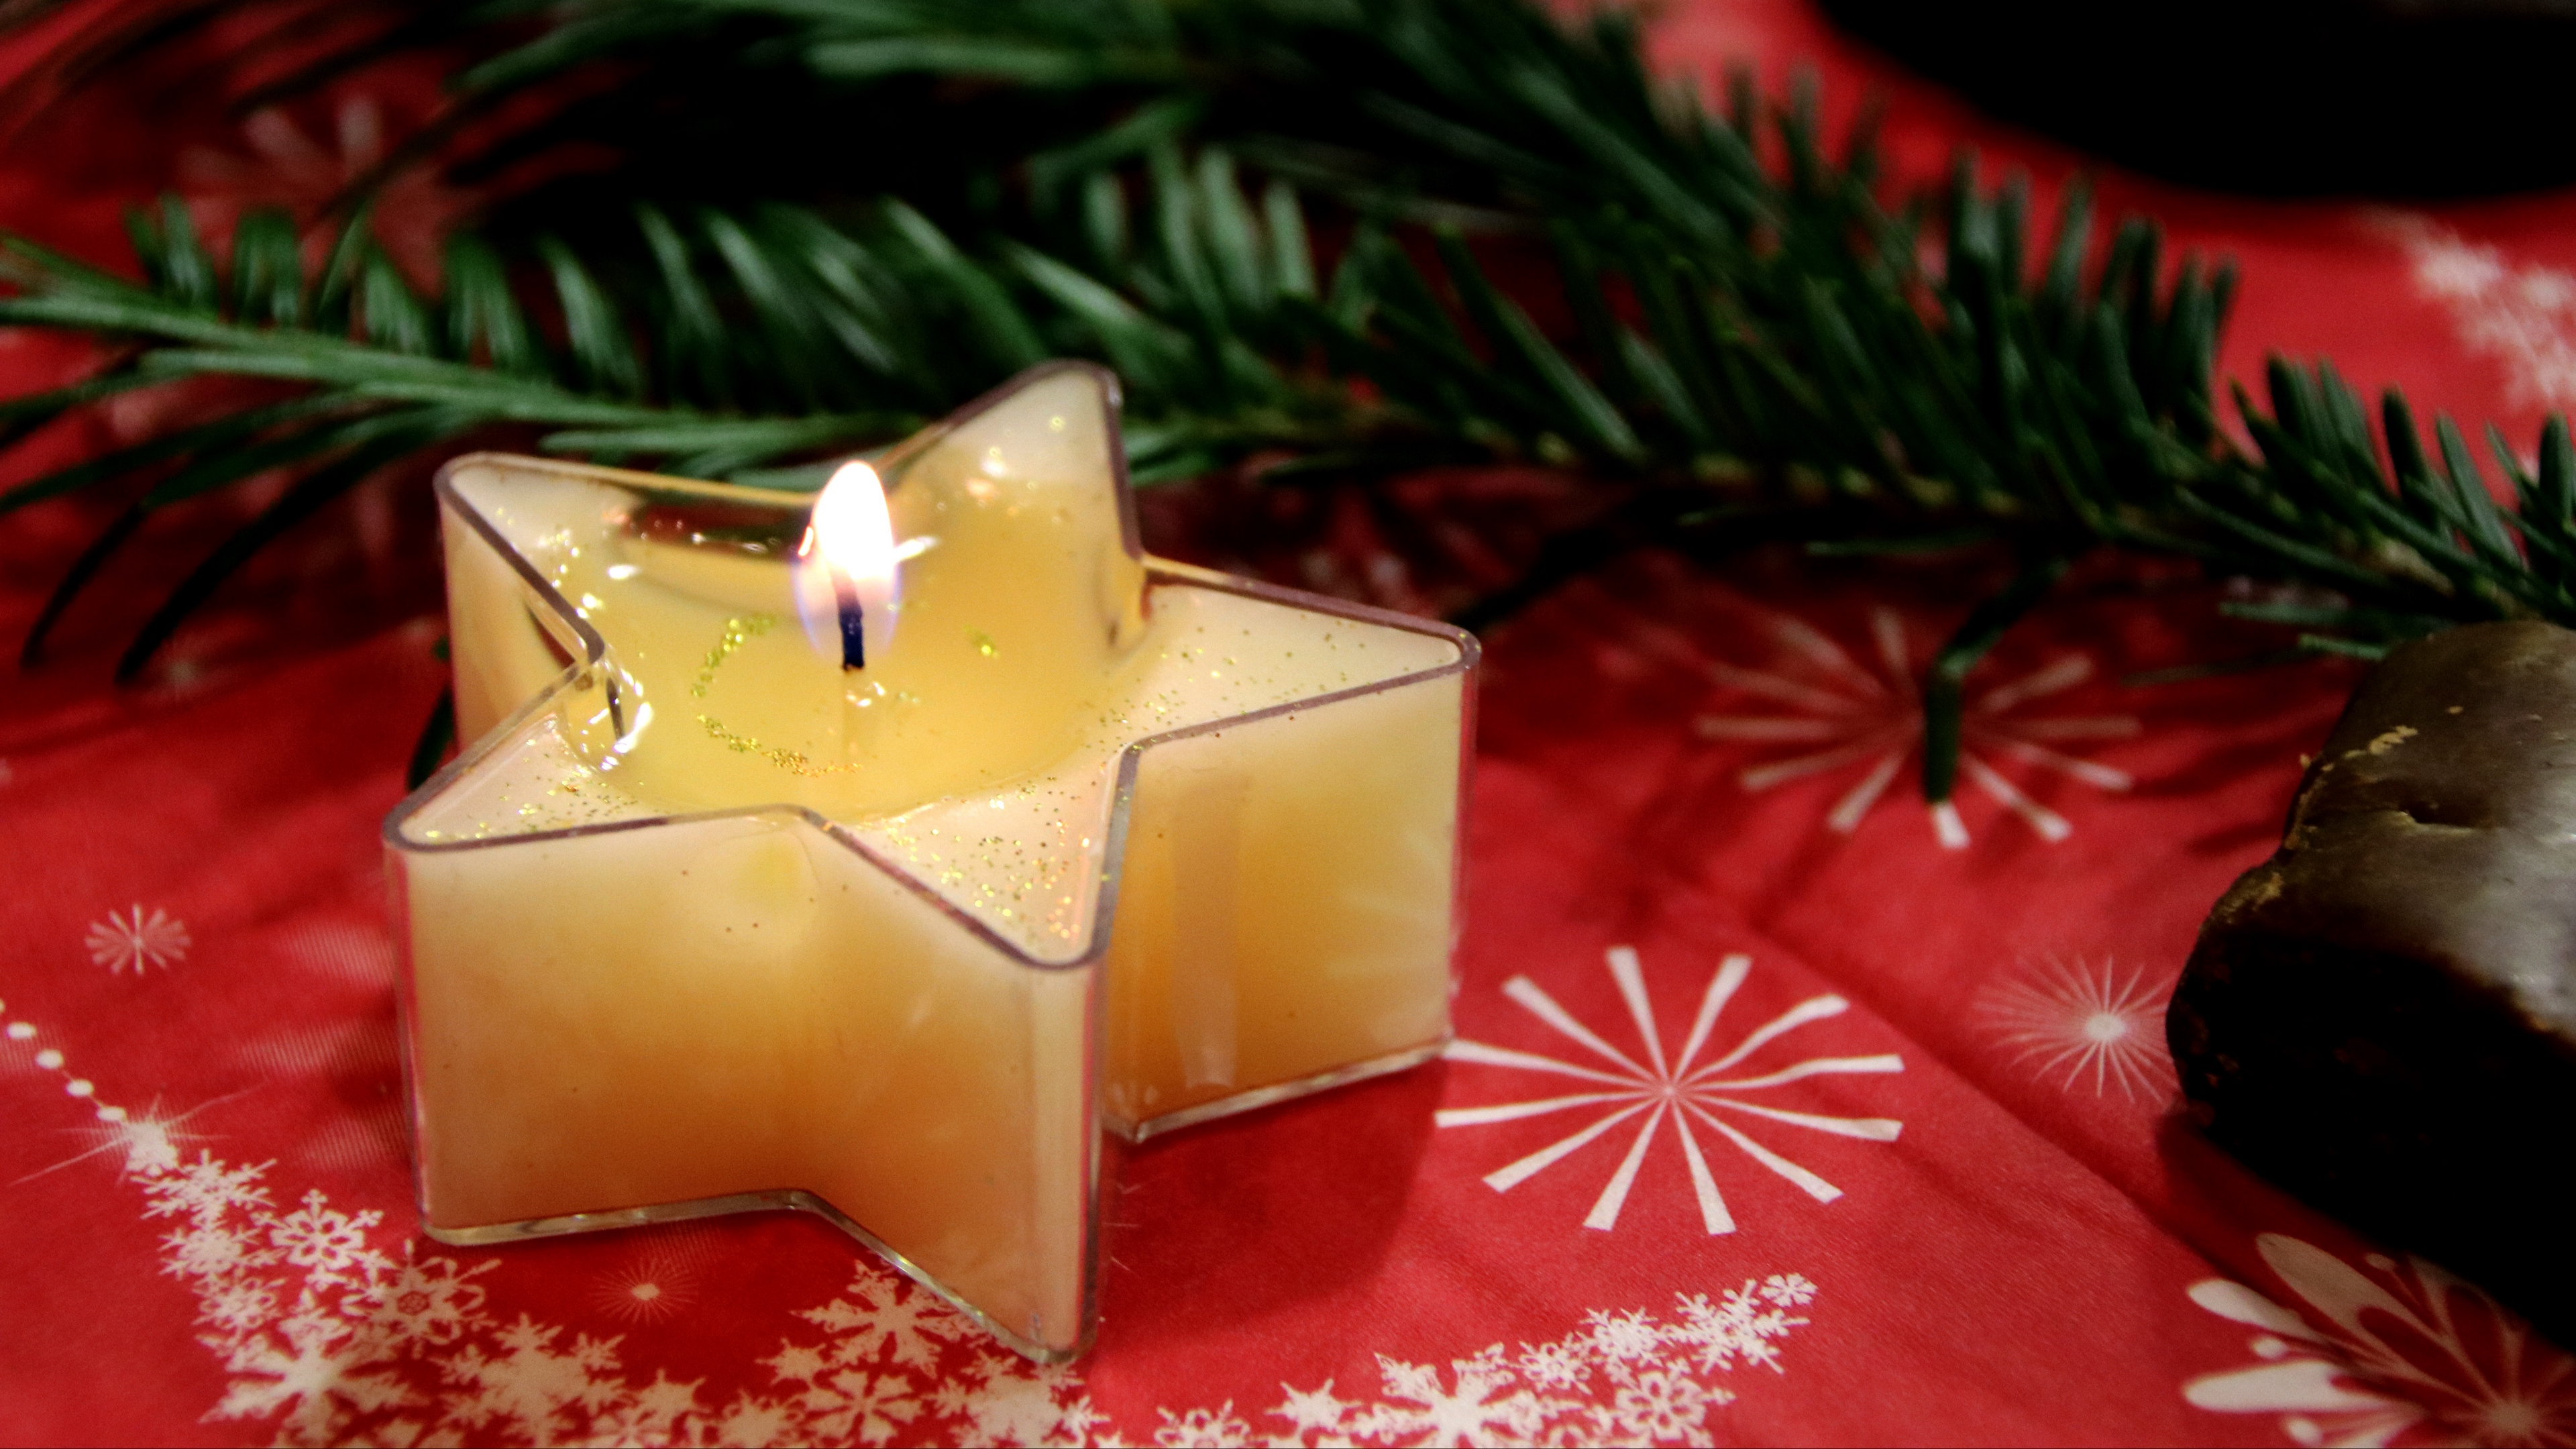 candle star christmas branch 4k 1538344680 - candle, star, christmas, branch 4k - Star, Christmas, candle